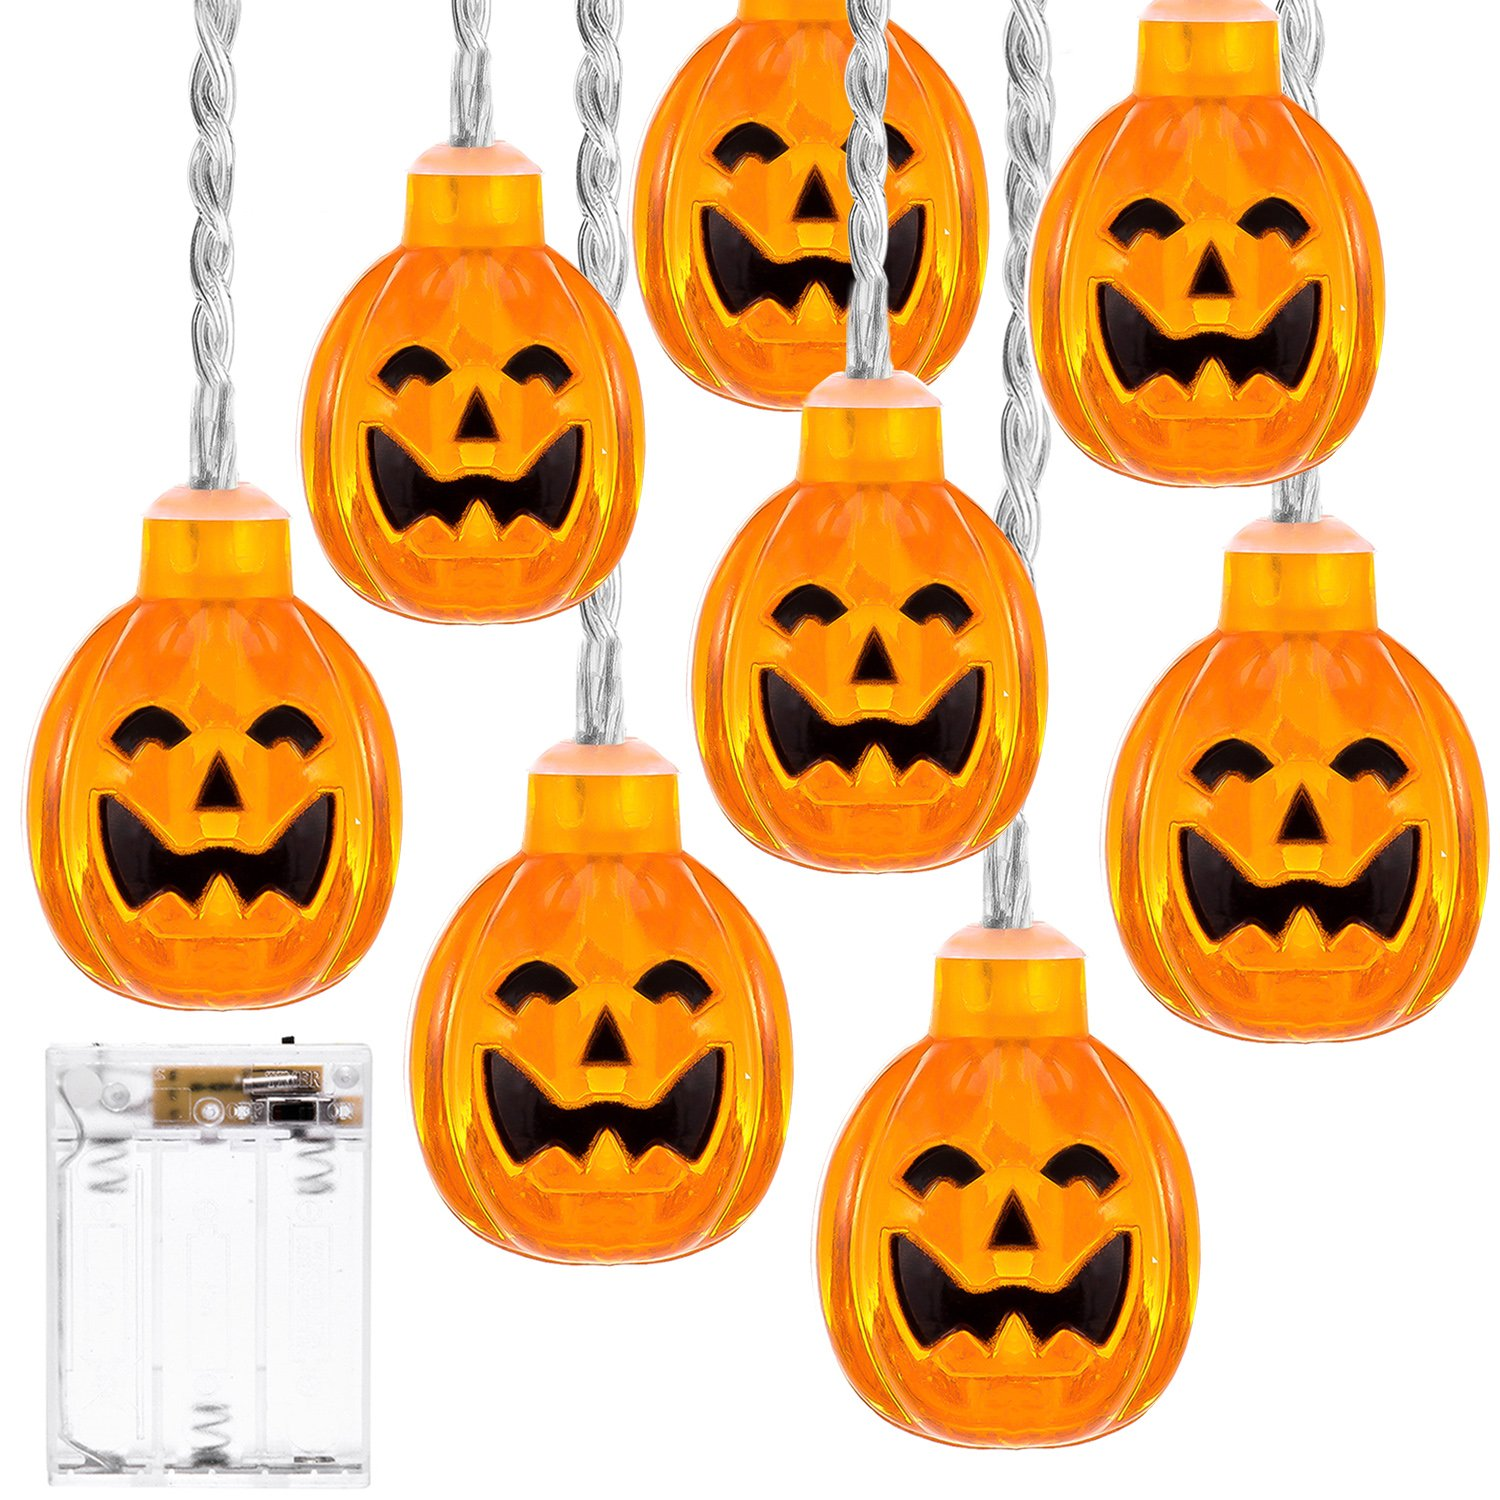 DecorNova Pumpkin String Lights, 20 LEDs Battery Operated 3D Jack-O-Lantern Rope Lights for Patio Outdoor Halloween Christmas Decorations, 10.7 Feet, Warm White